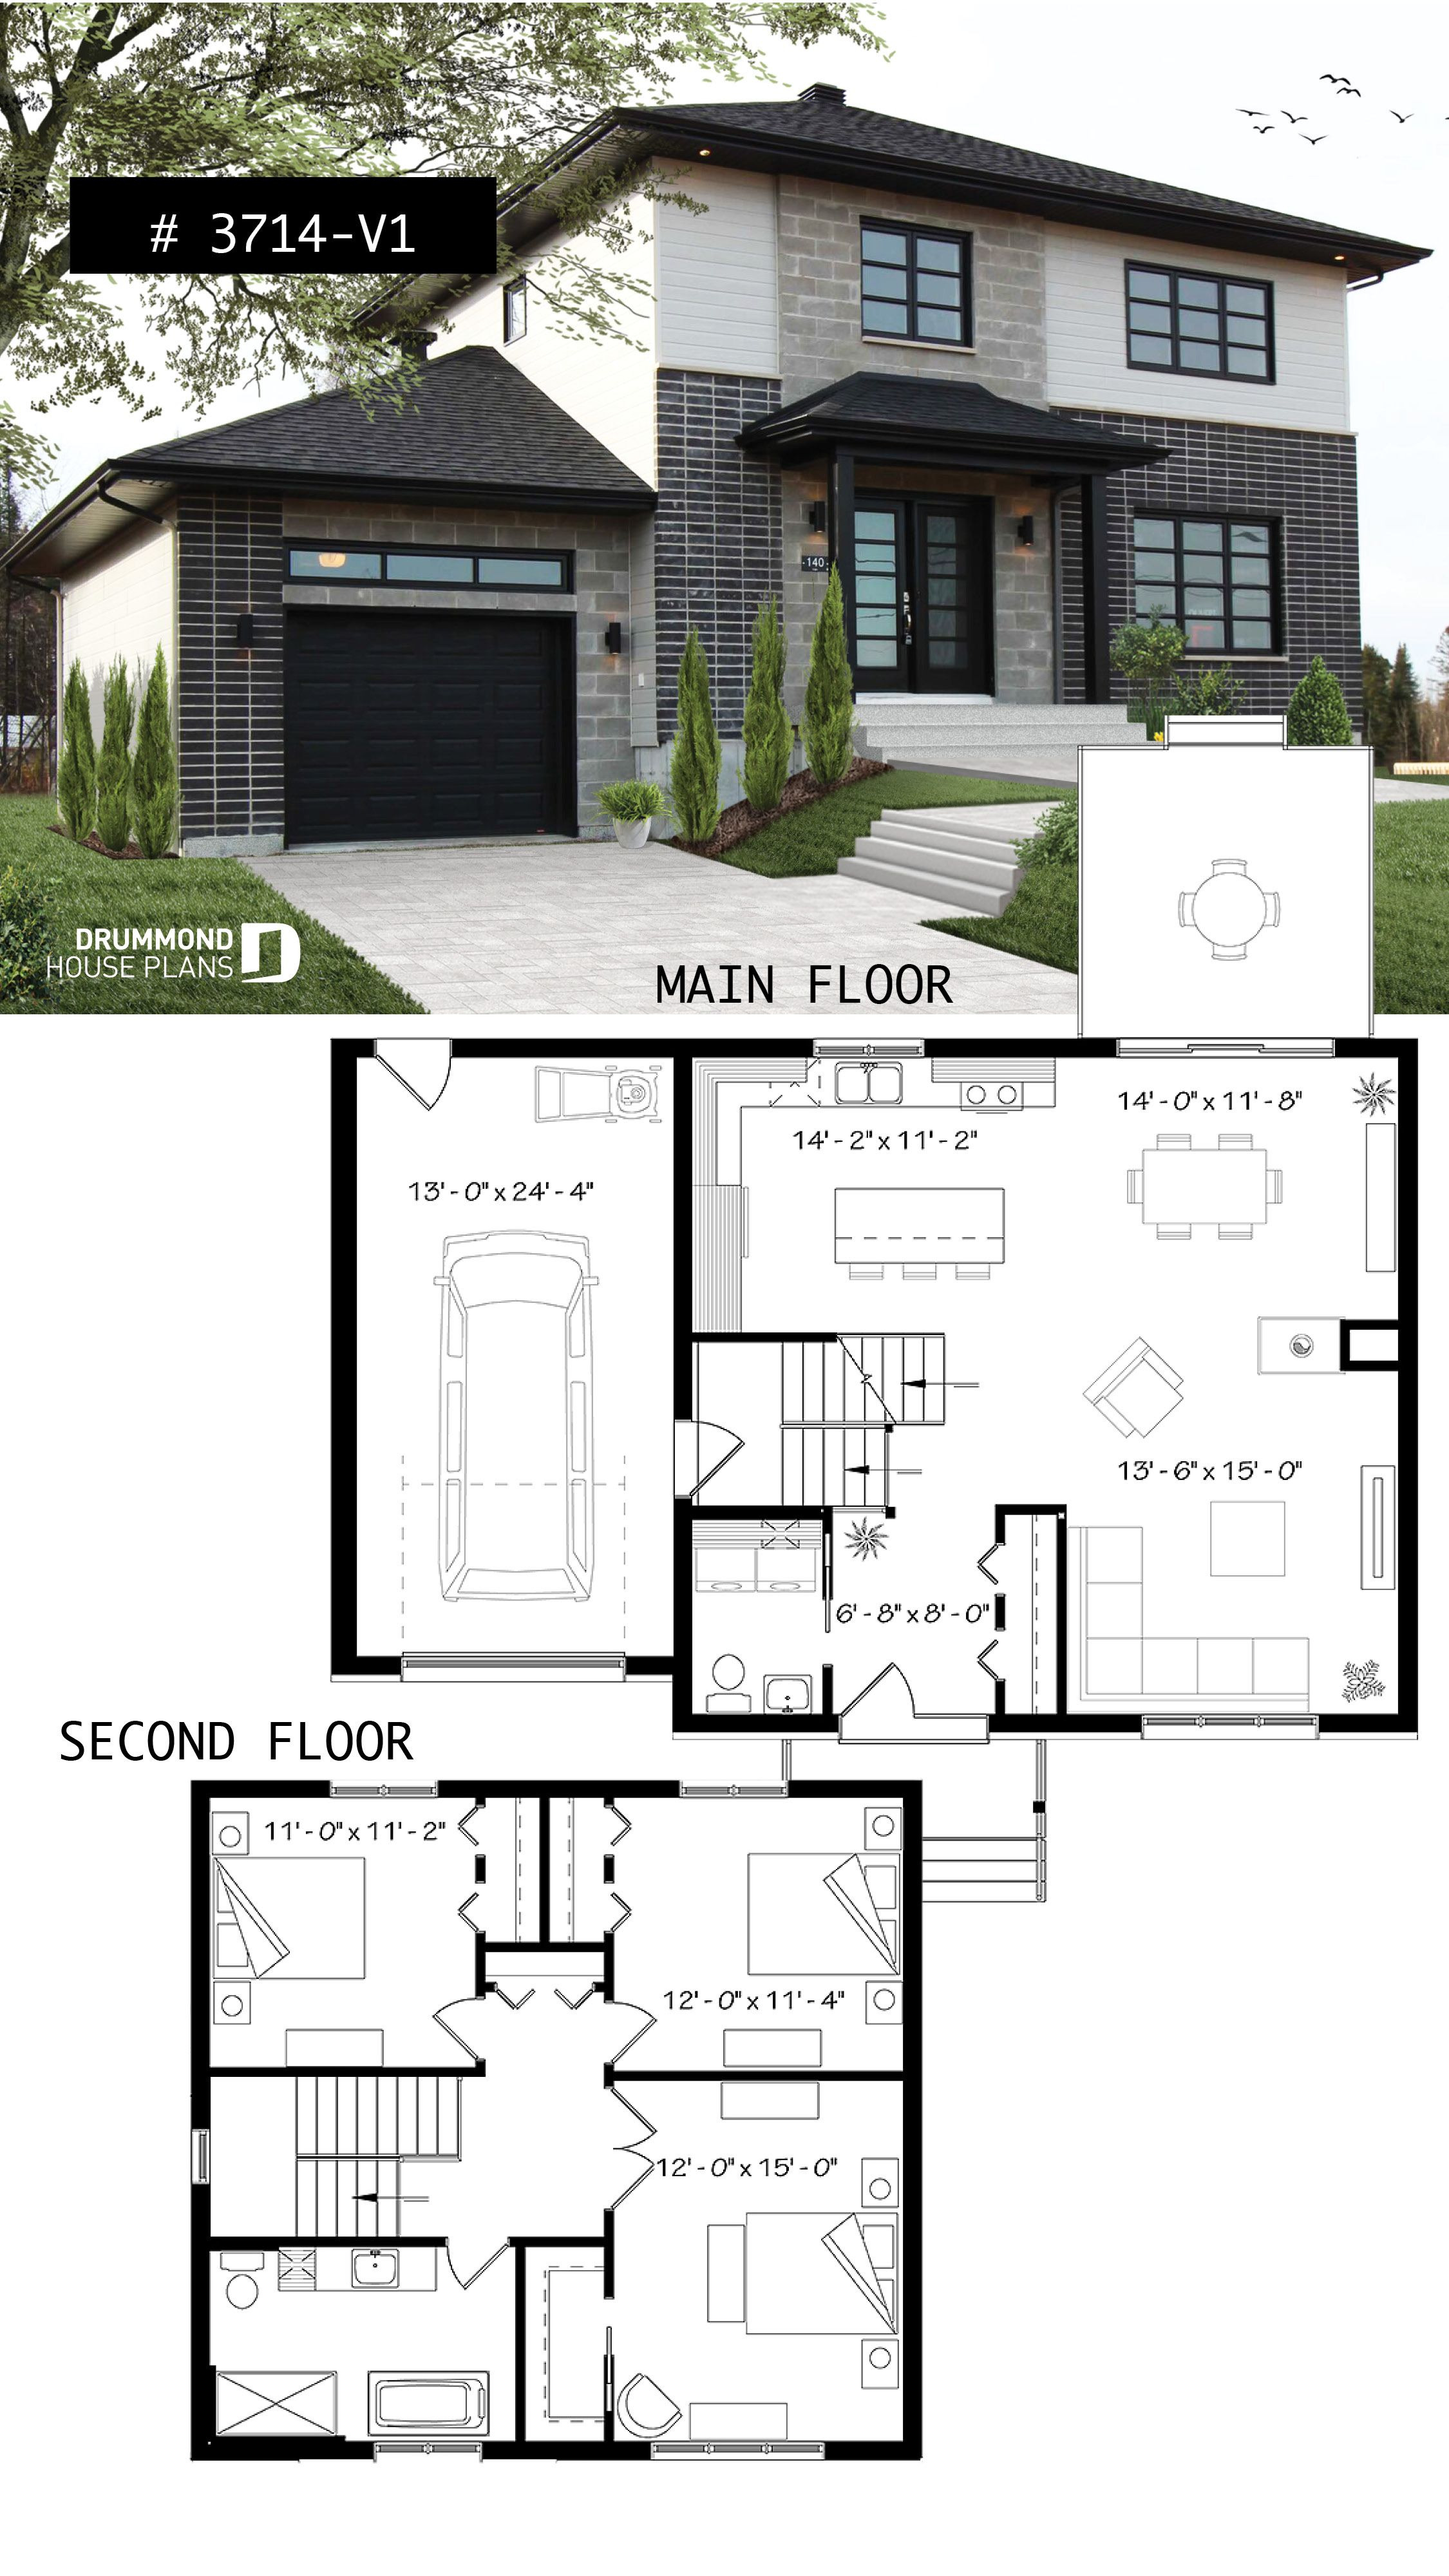 Modern House Plans with Pictures Unique House Plan Altair 2 No 3714 V1